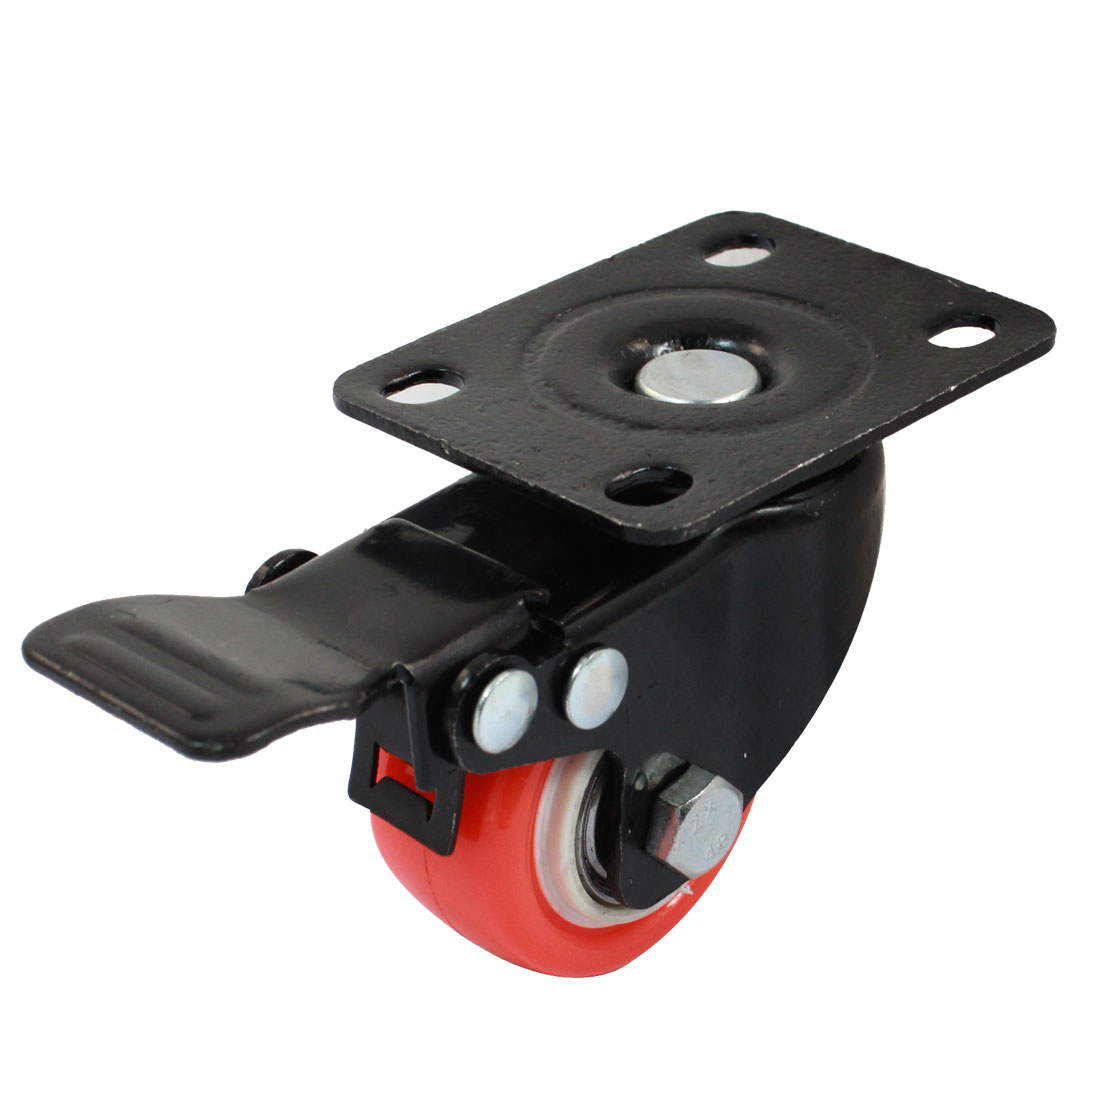 "Market Shopping Trolley Top Plate 1.5"" Wheel Swivel Brake Caster Orange Black"